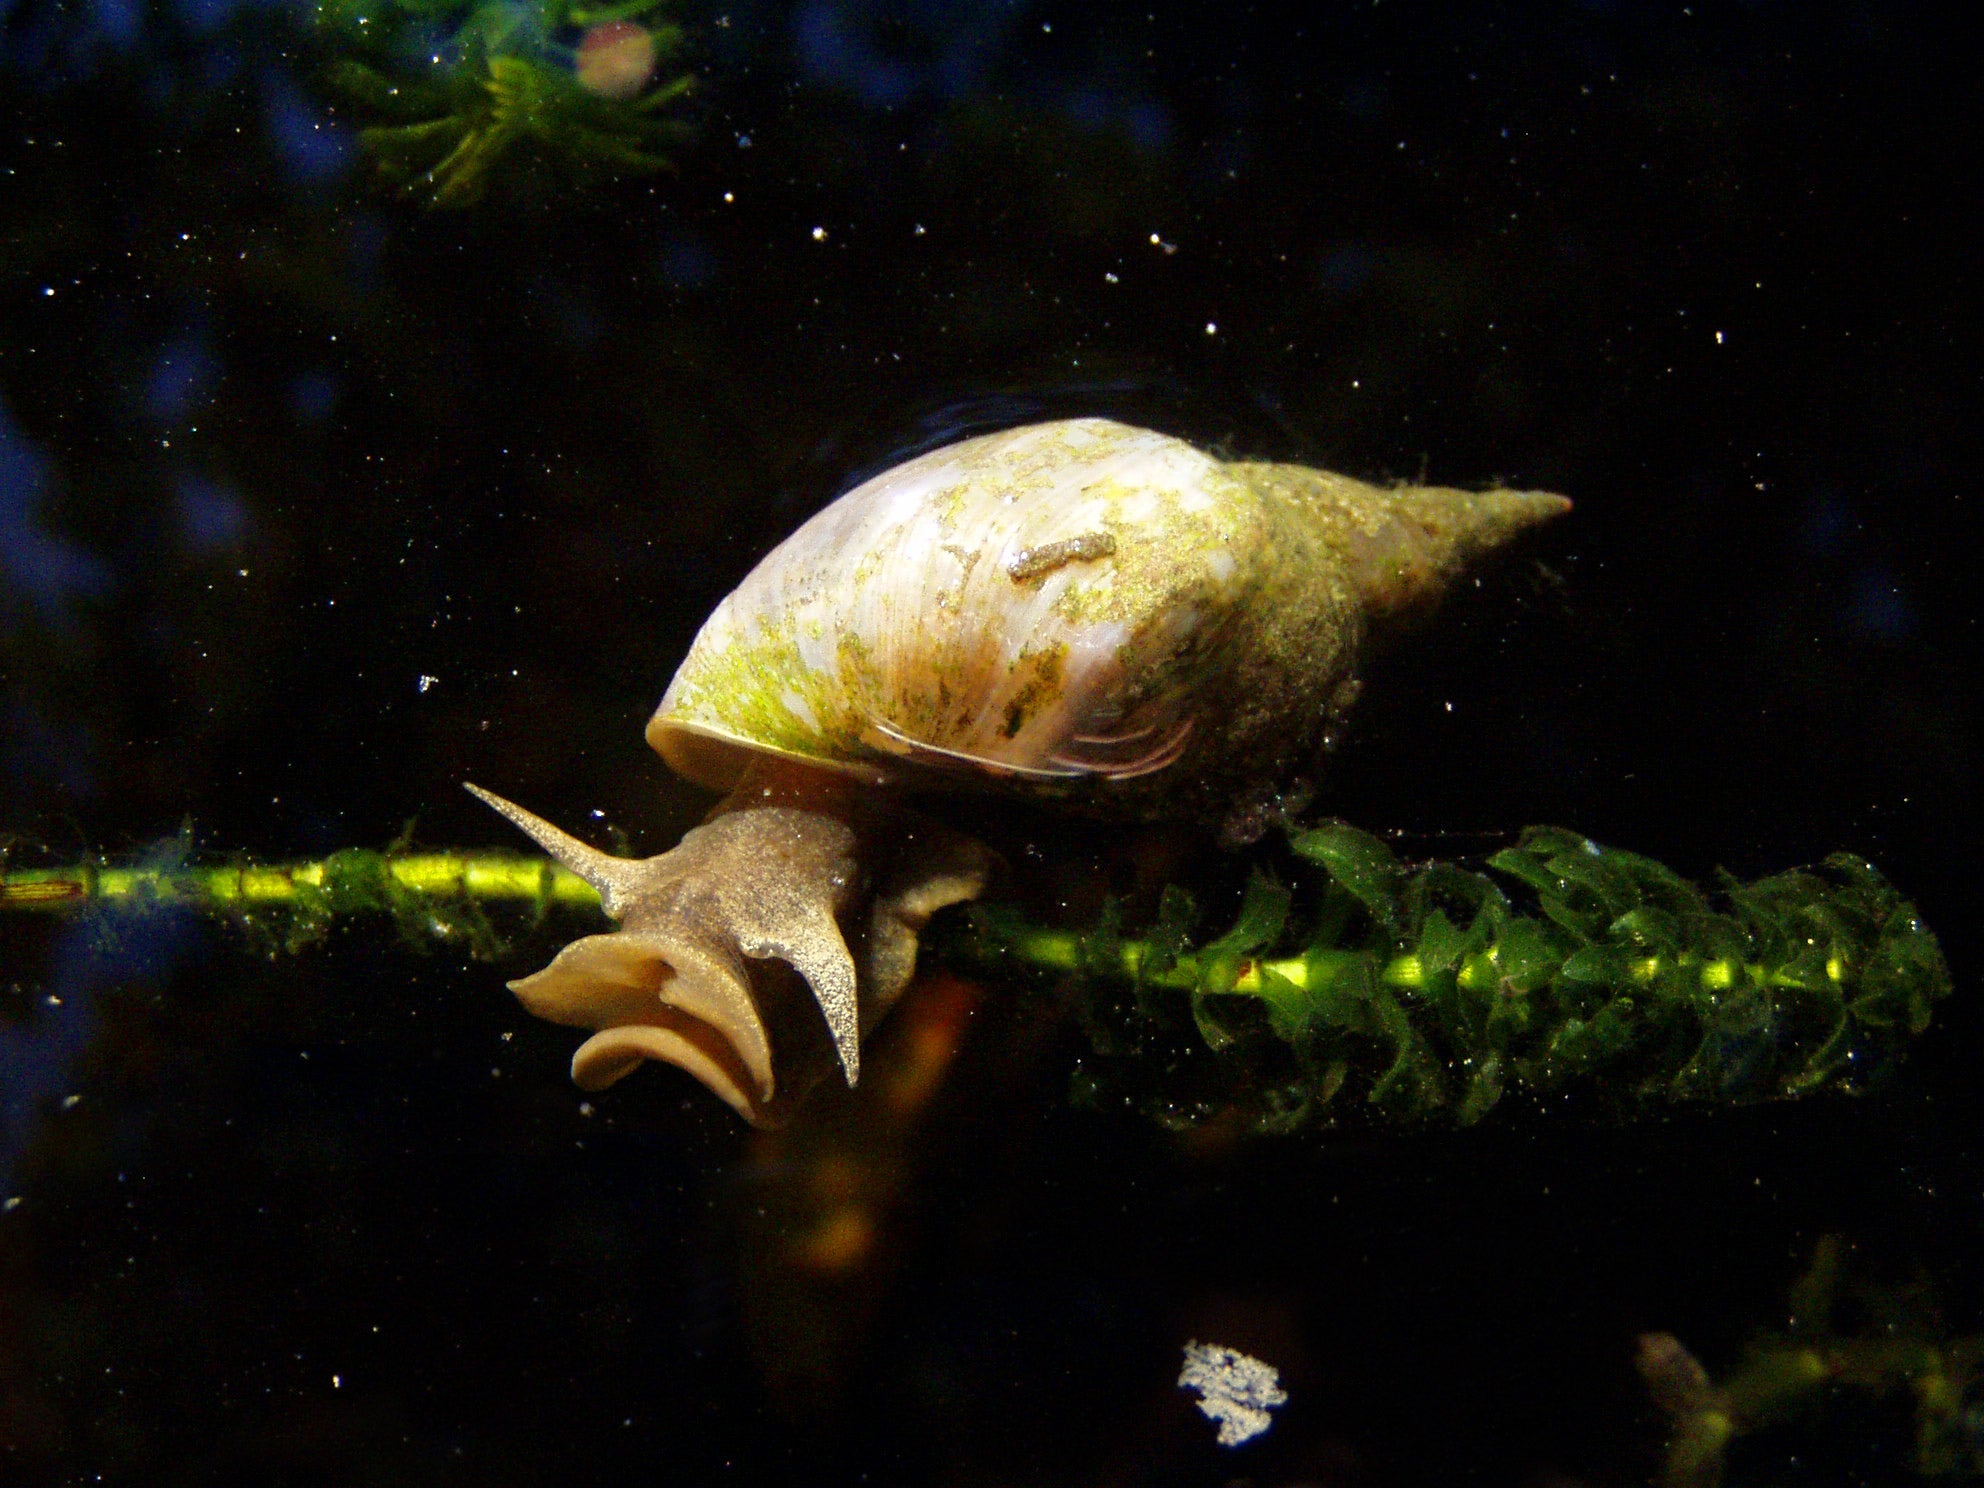 Scientists Force Snails To Exercise To See If It Affects Their Decision-Making Skills